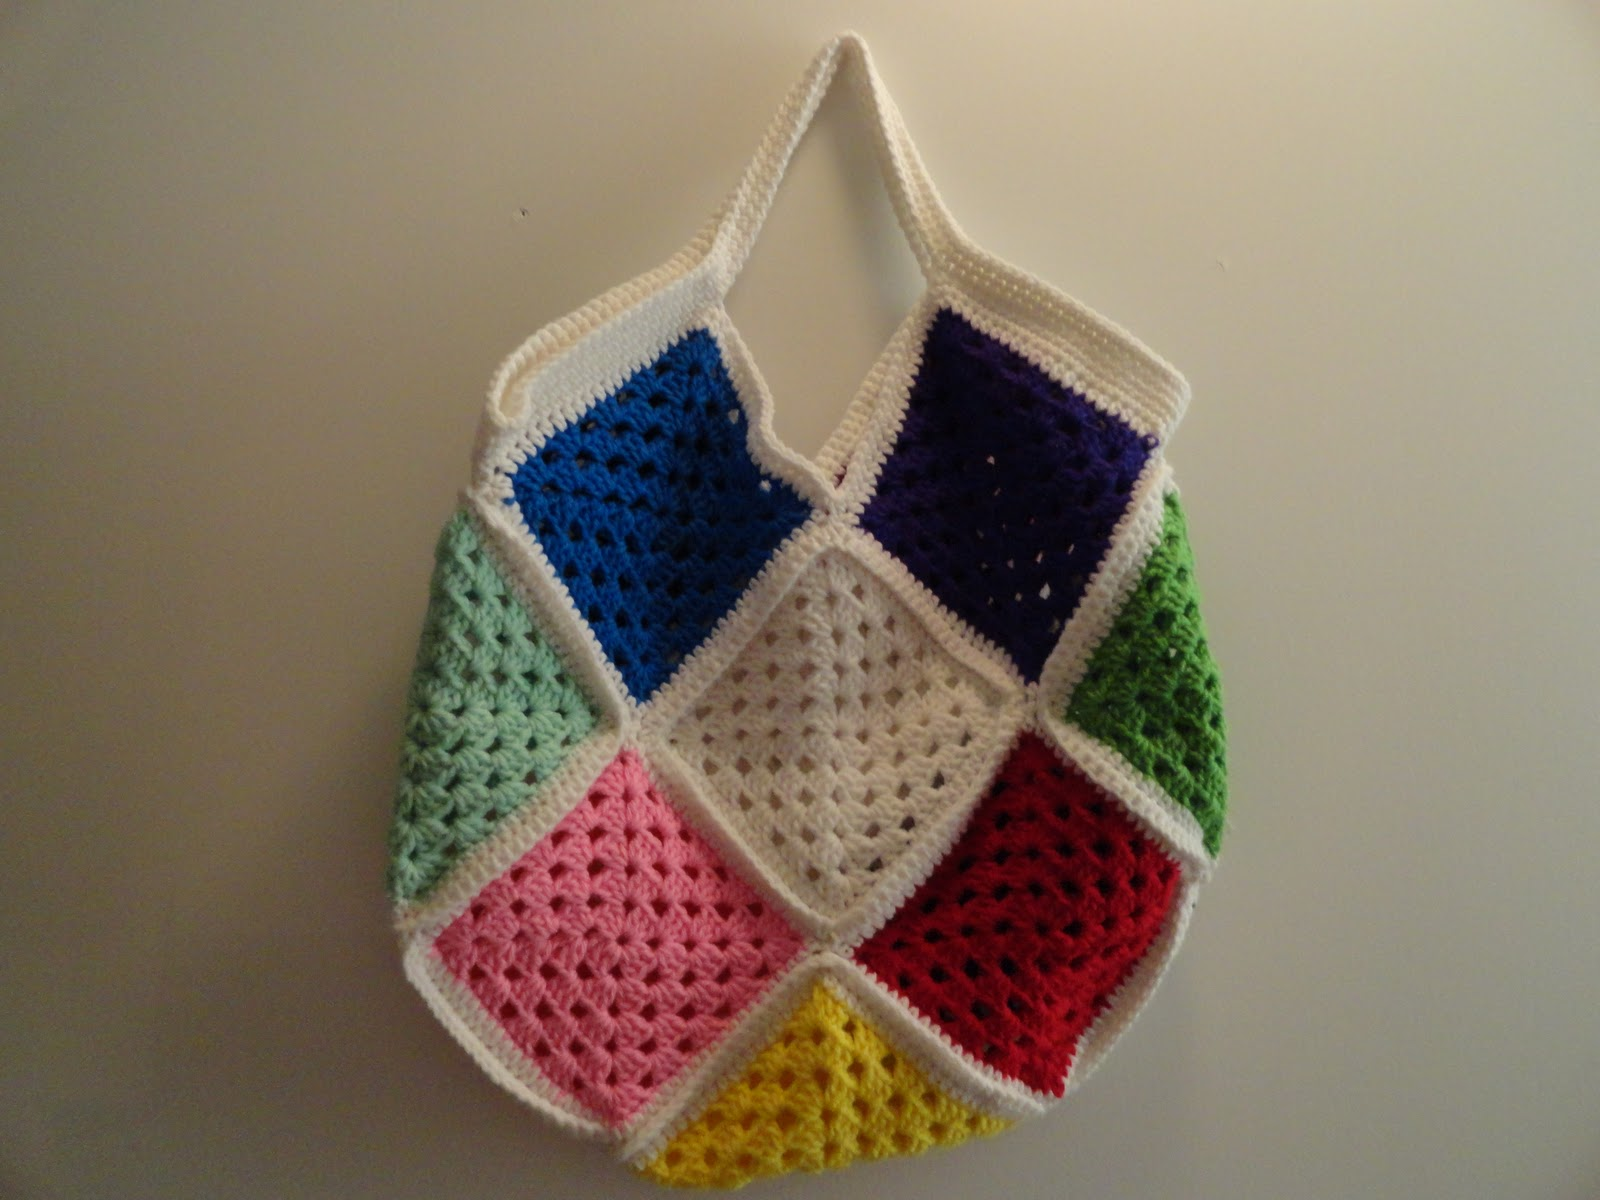 Crochet Bag Granny Square : Crochet Crazy Mama: Large Crochet Granny Square Scrap Bag